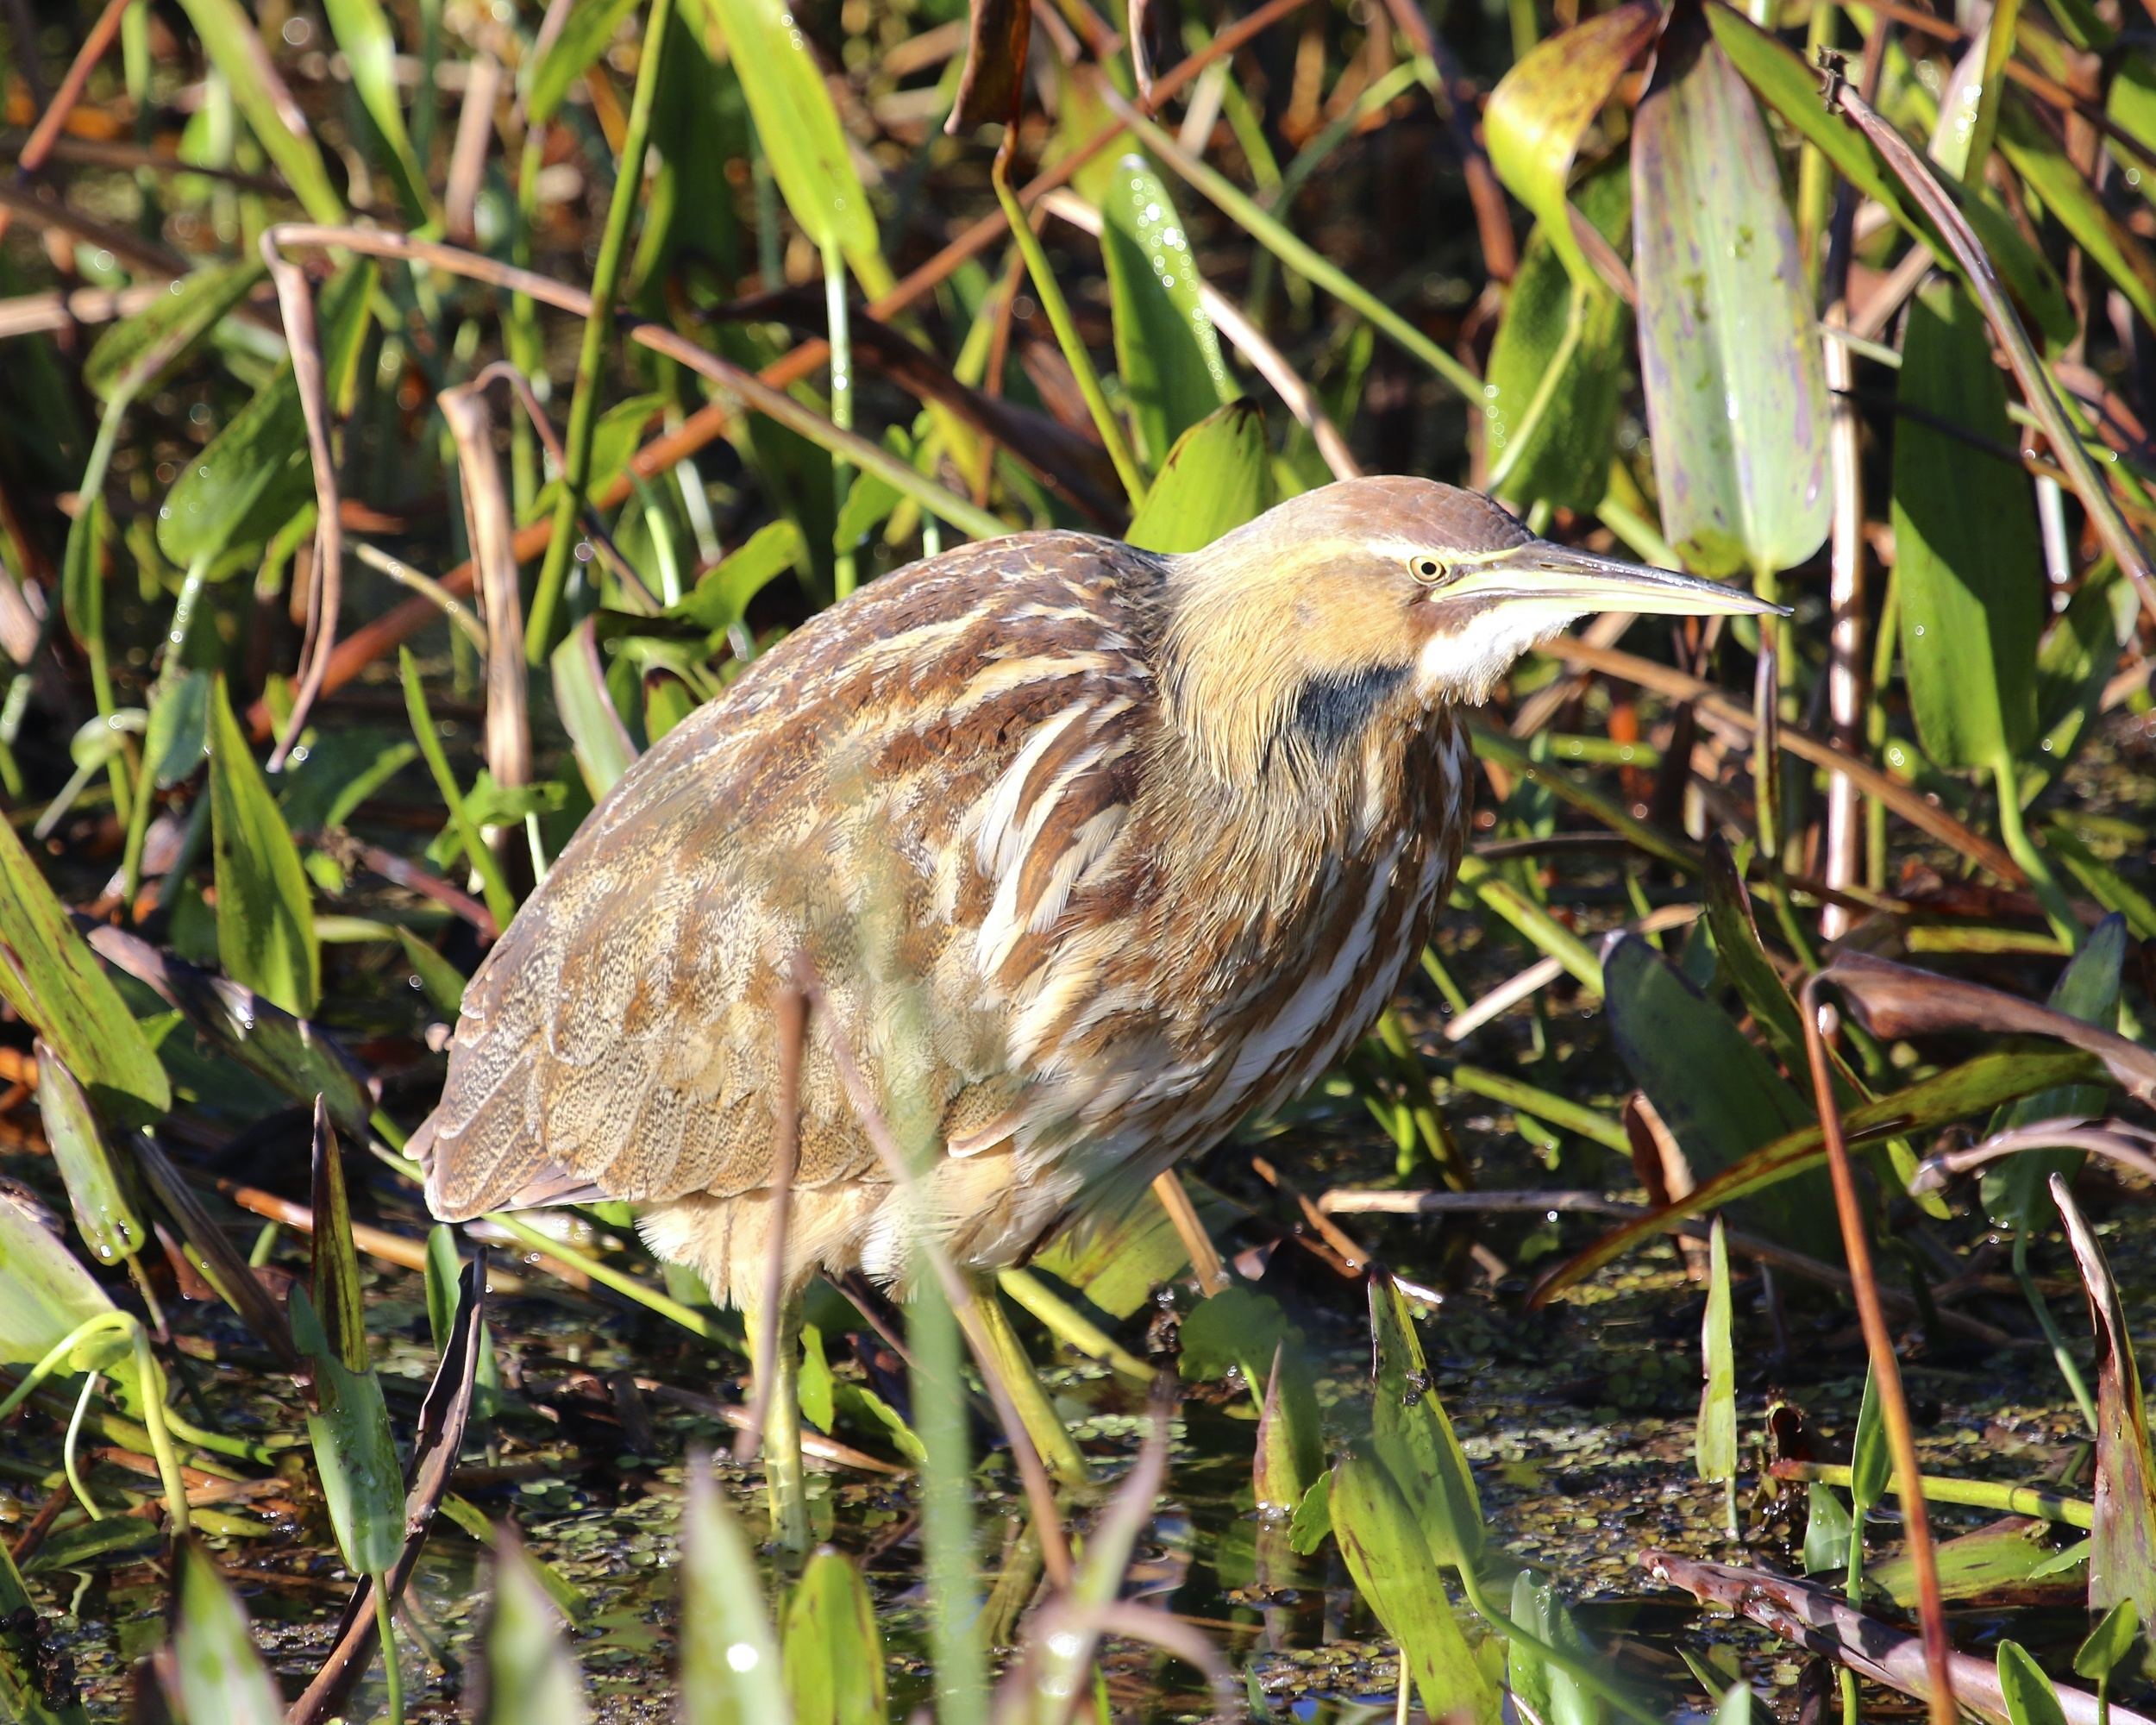 An American Bittern poses for the photographers in the bright morning sun.